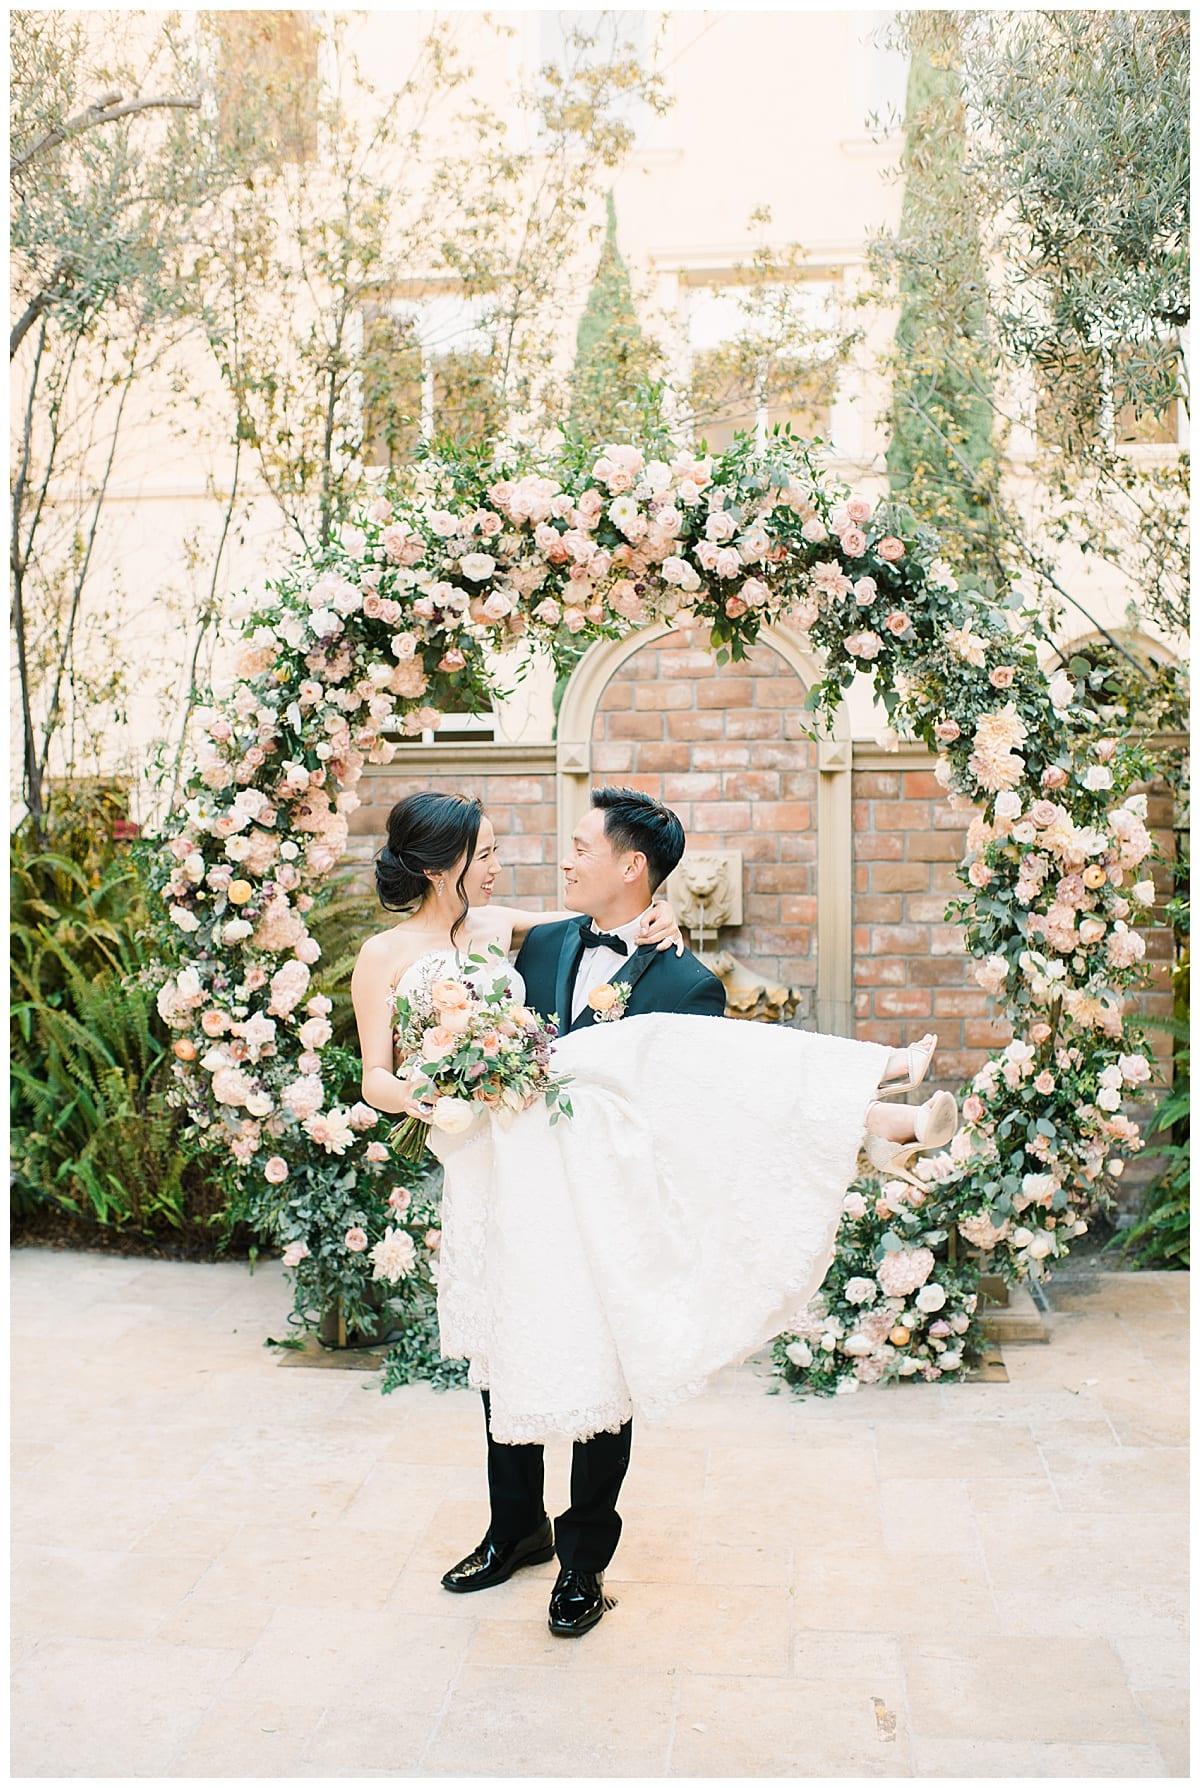 10-ways-to-make-your-wedding-stand-out-Carissa-Woo-Photography_0052.jpg